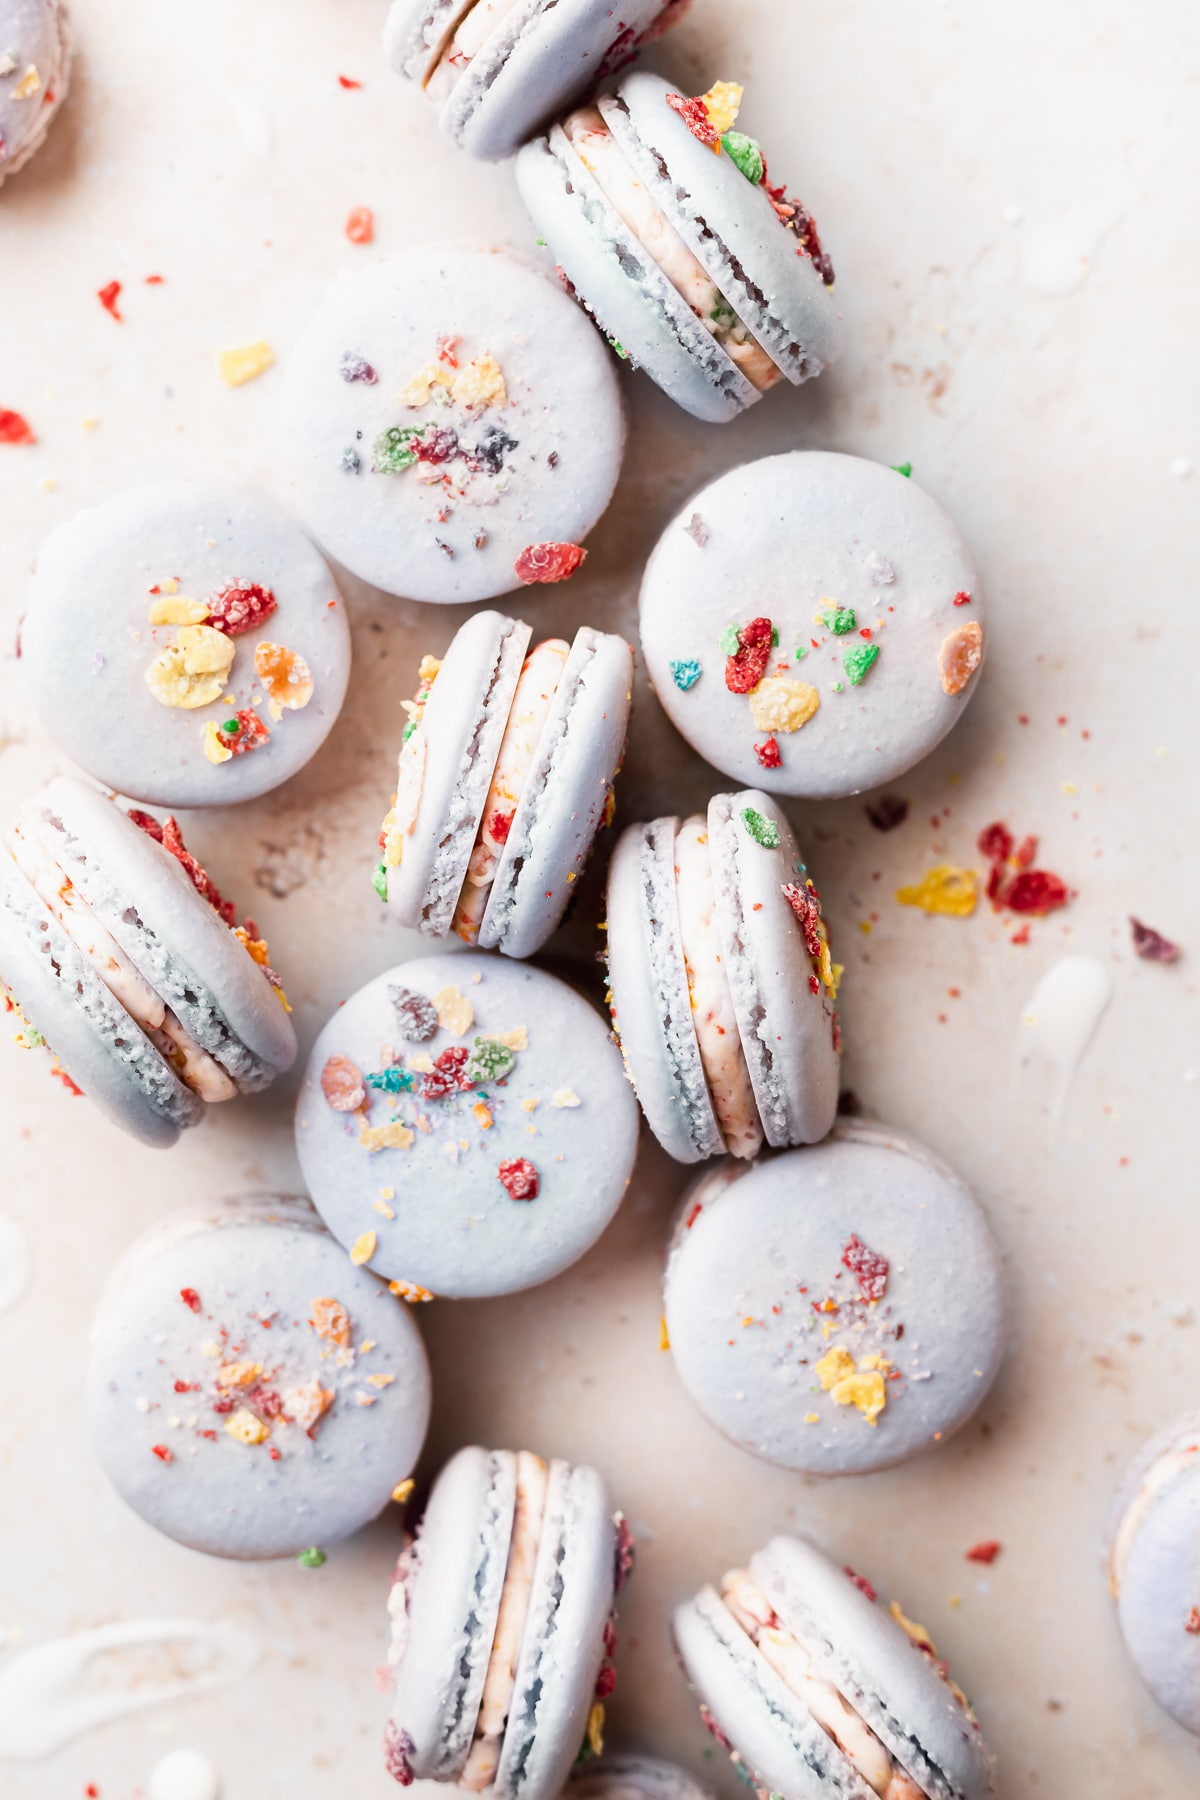 overhead shot of the macarons on their sides surrounded by cereal